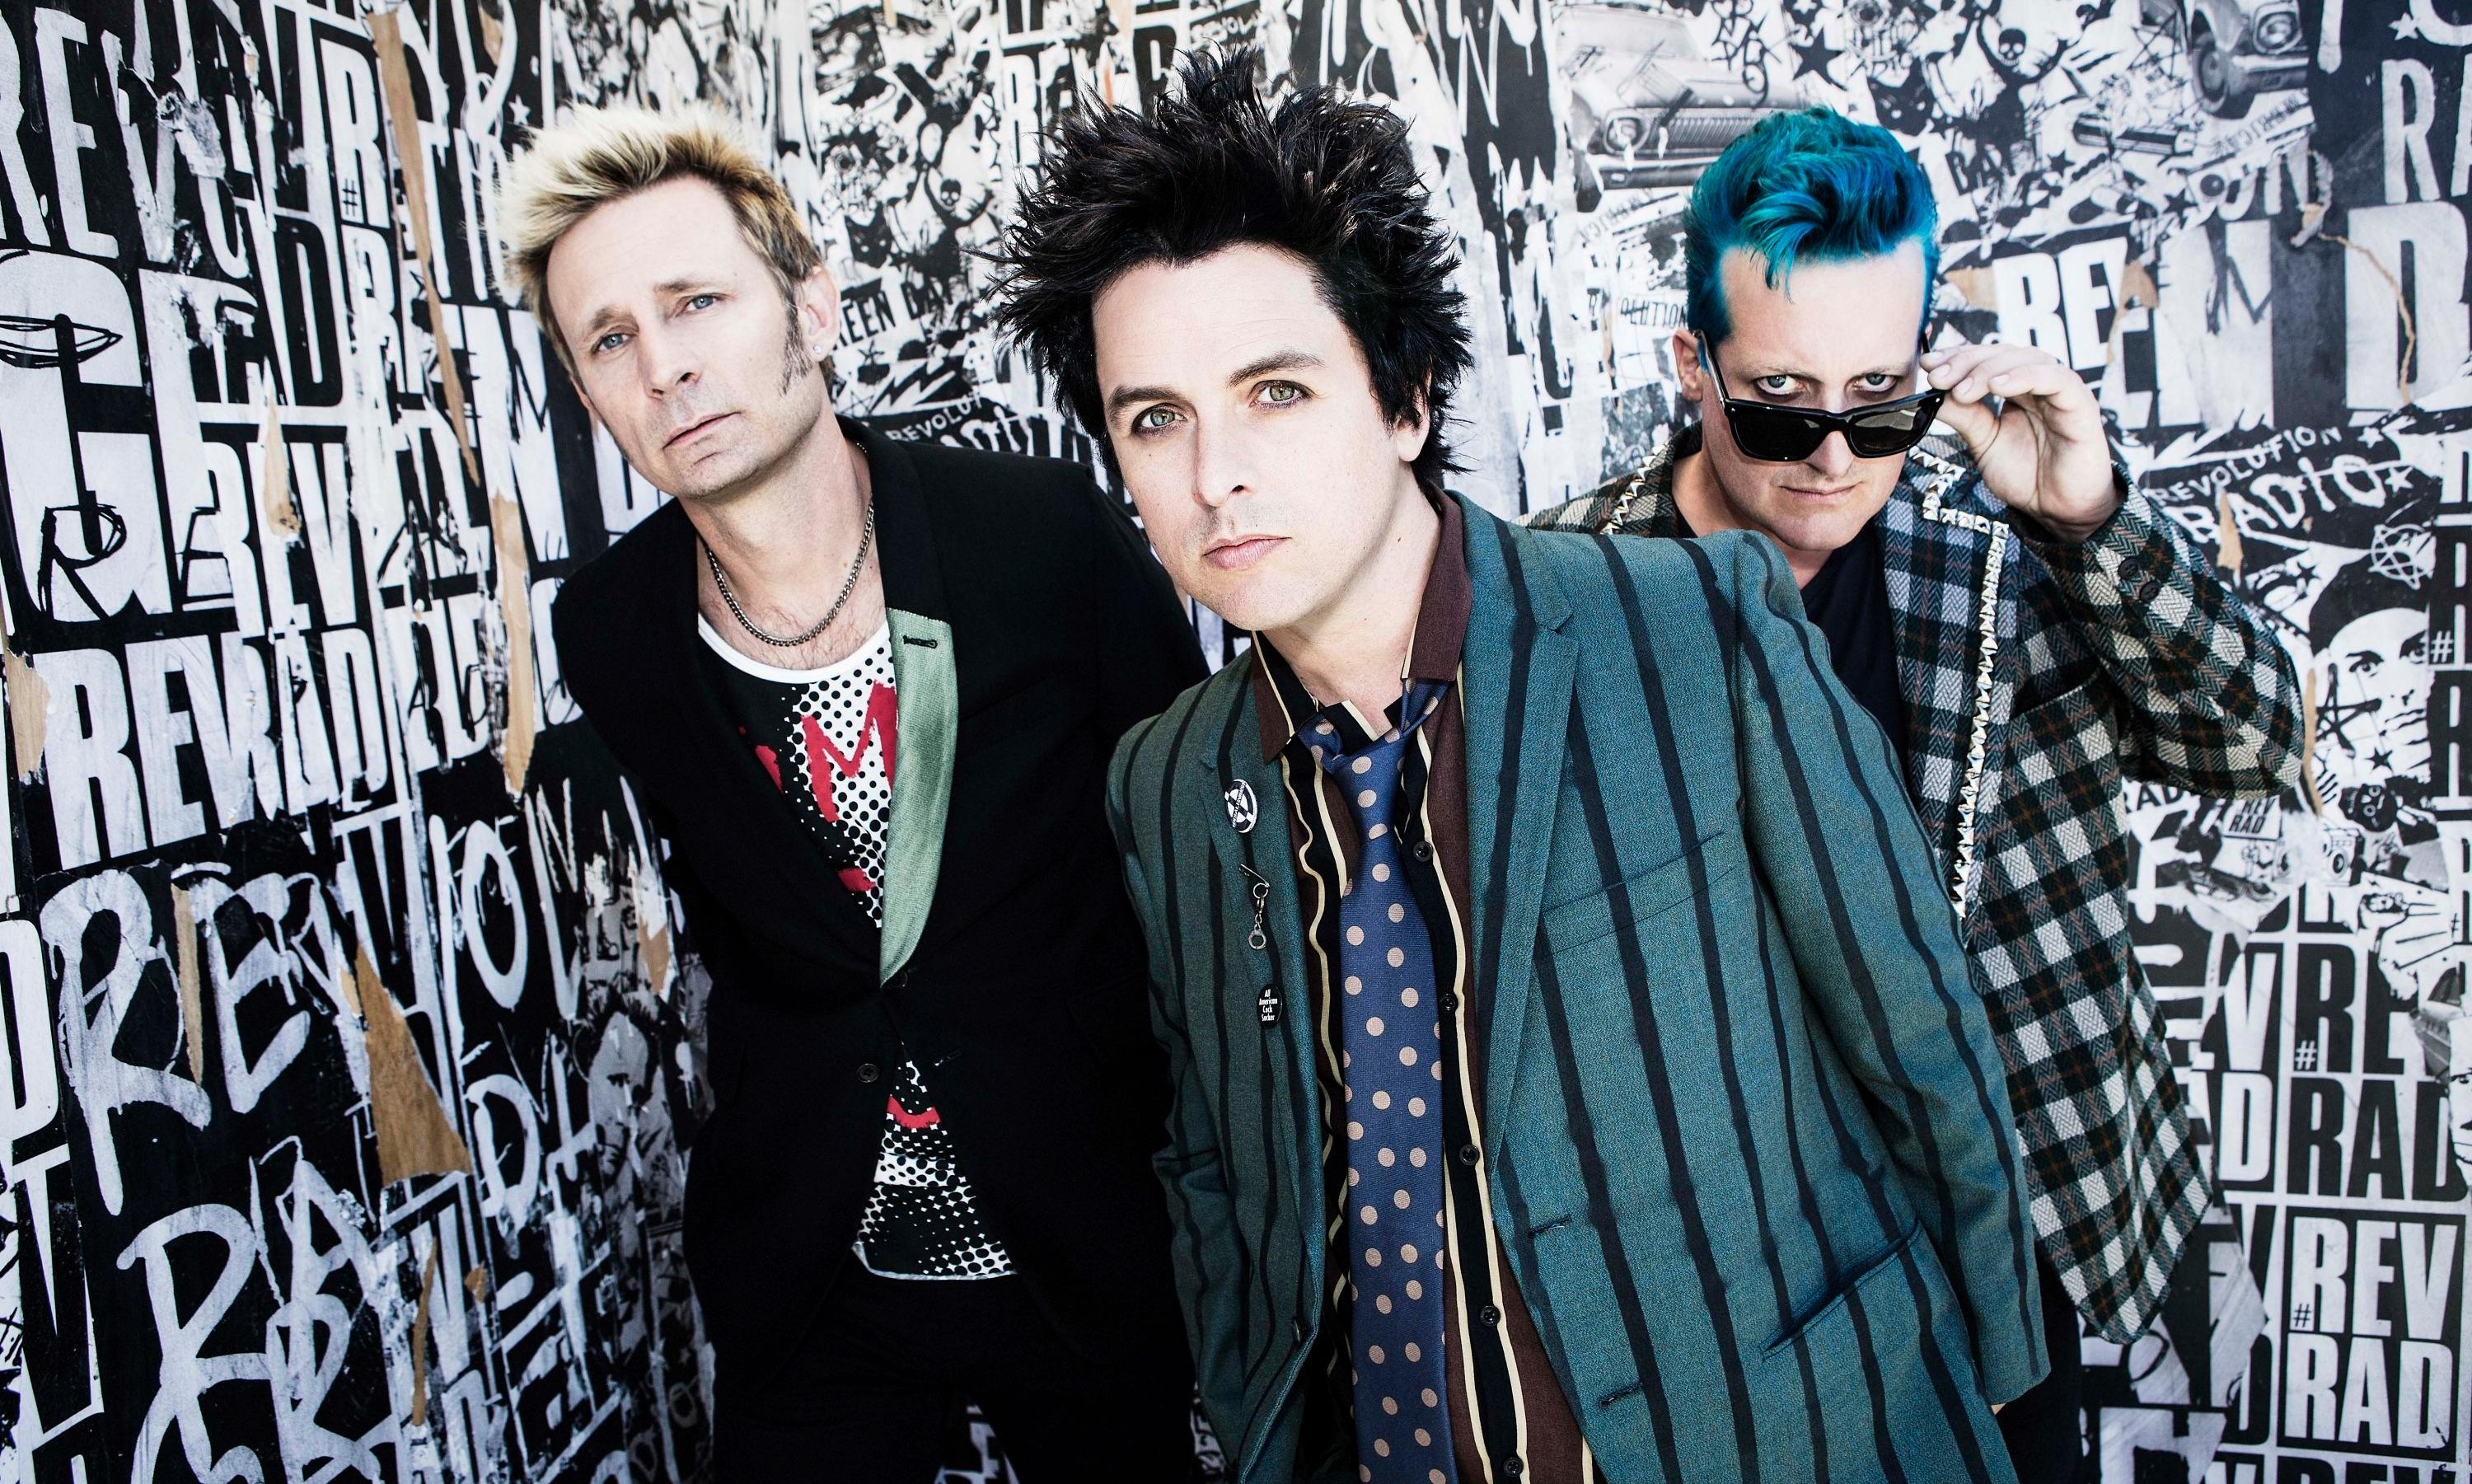 What makes Green Day think four men are the perfect authors for a book about female empowerment?